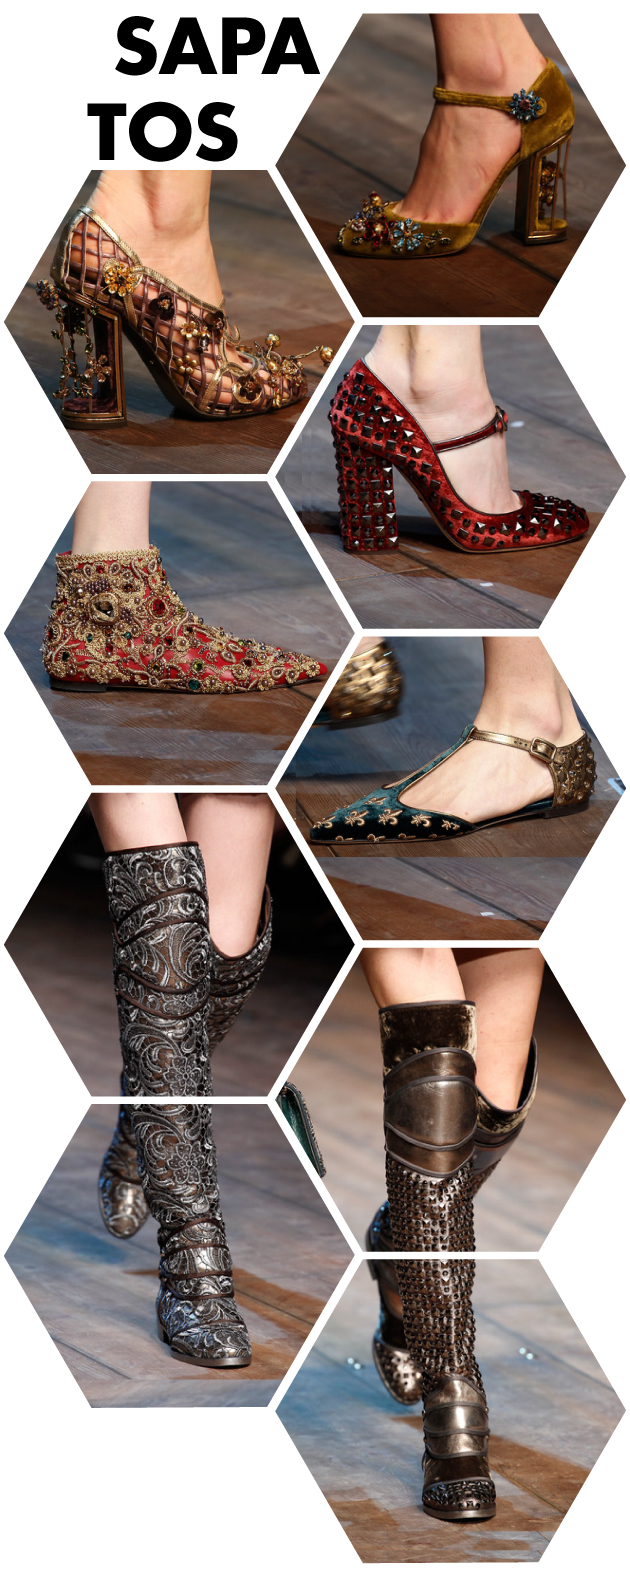 dolce-gabbana-fall-2014-sapatos-shoes-botas-boots-medieval-veludo-bordado